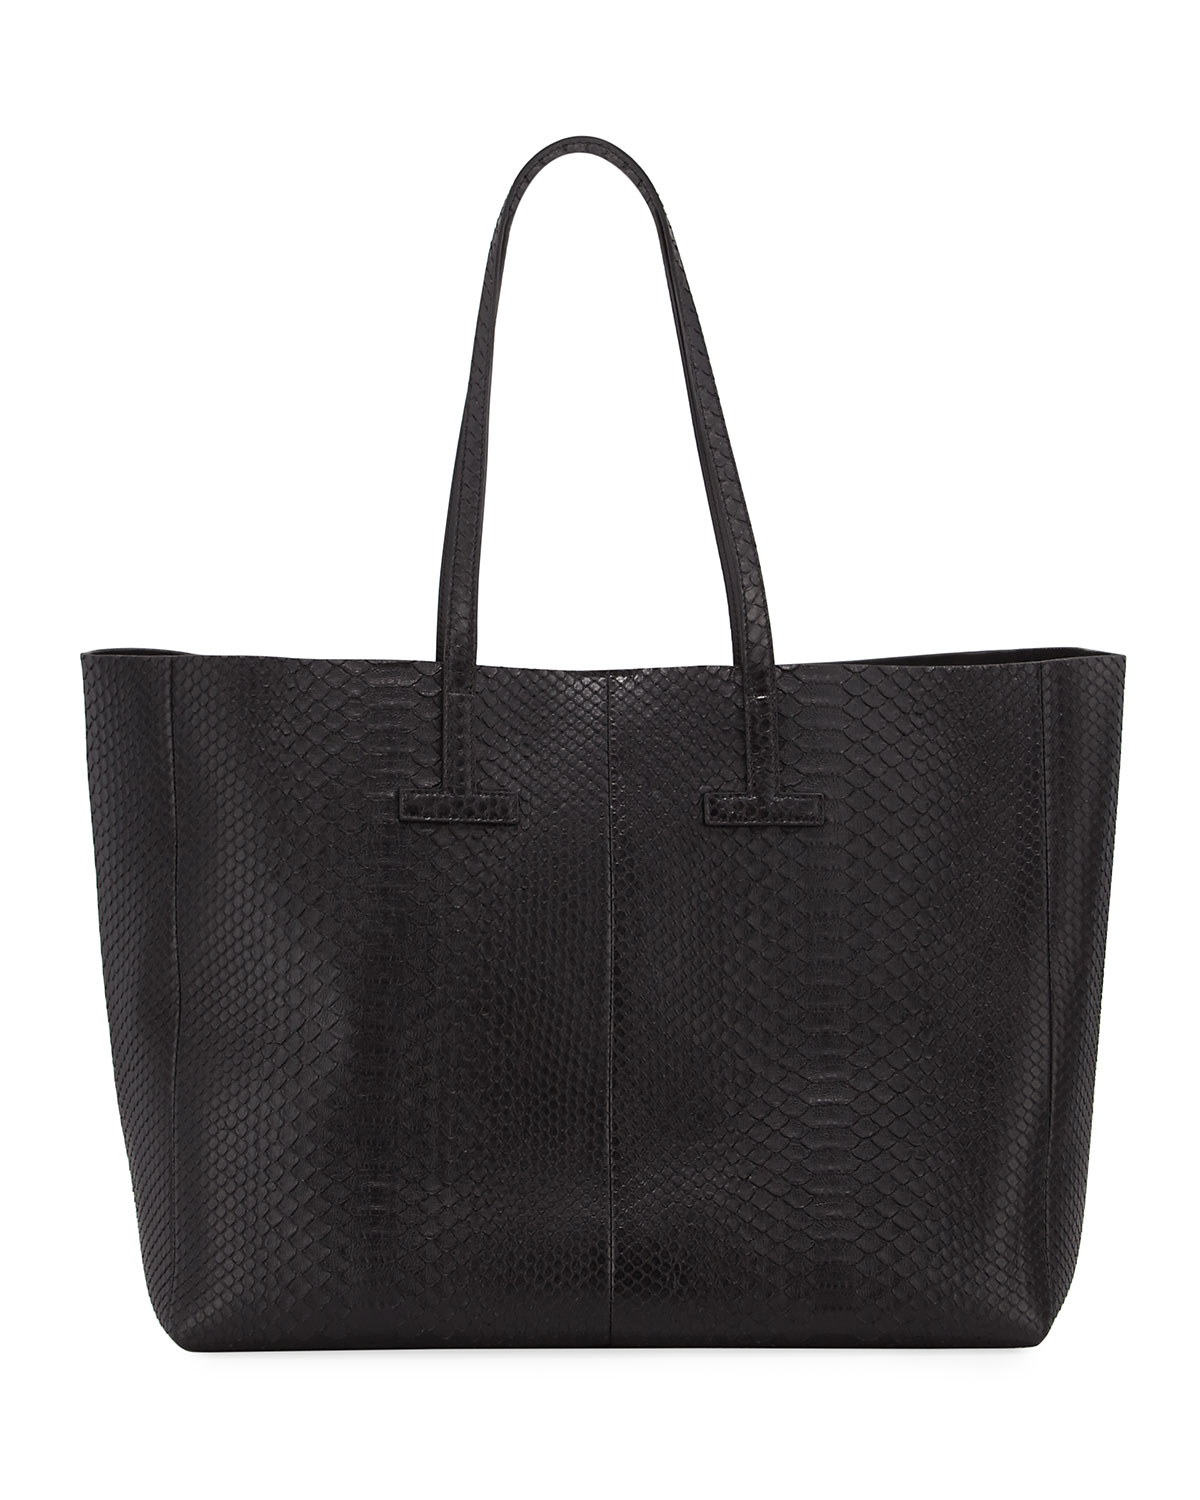 7f10032d8b3 TOM FORD Large Python T Tote Bag, Black   Neiman Marcus